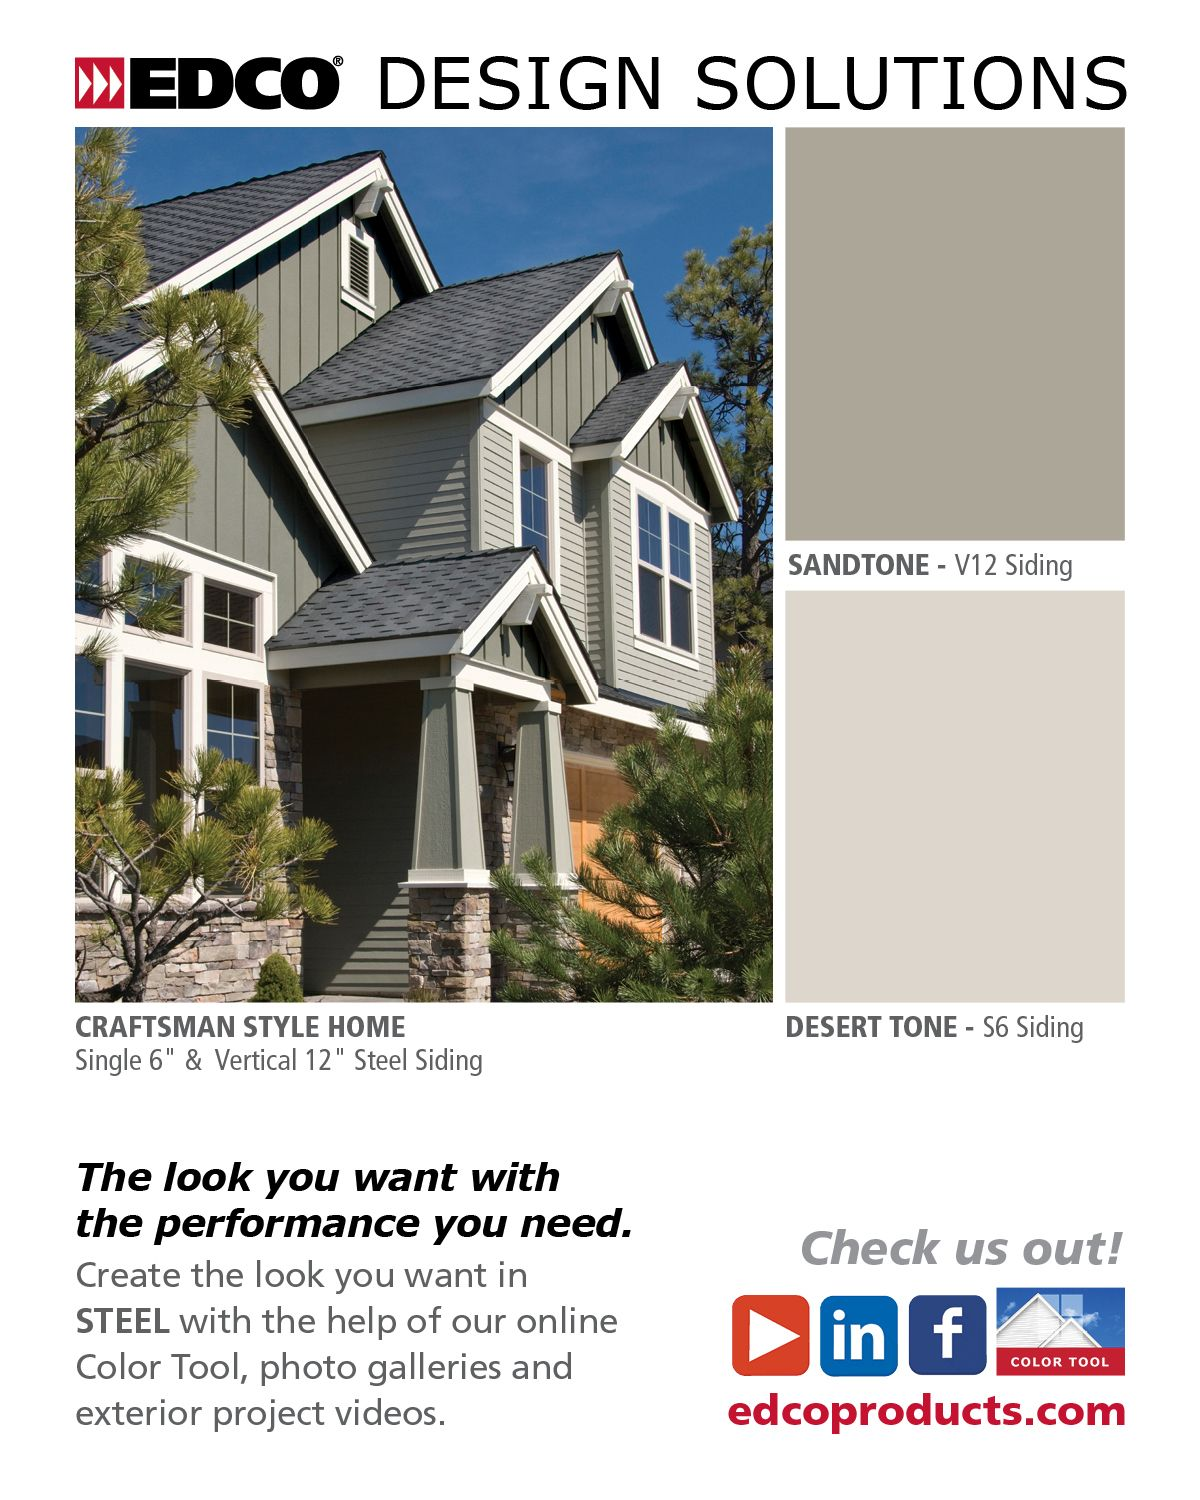 Best Steel Siding Image By Arthur Edco On Edco Products Design 400 x 300